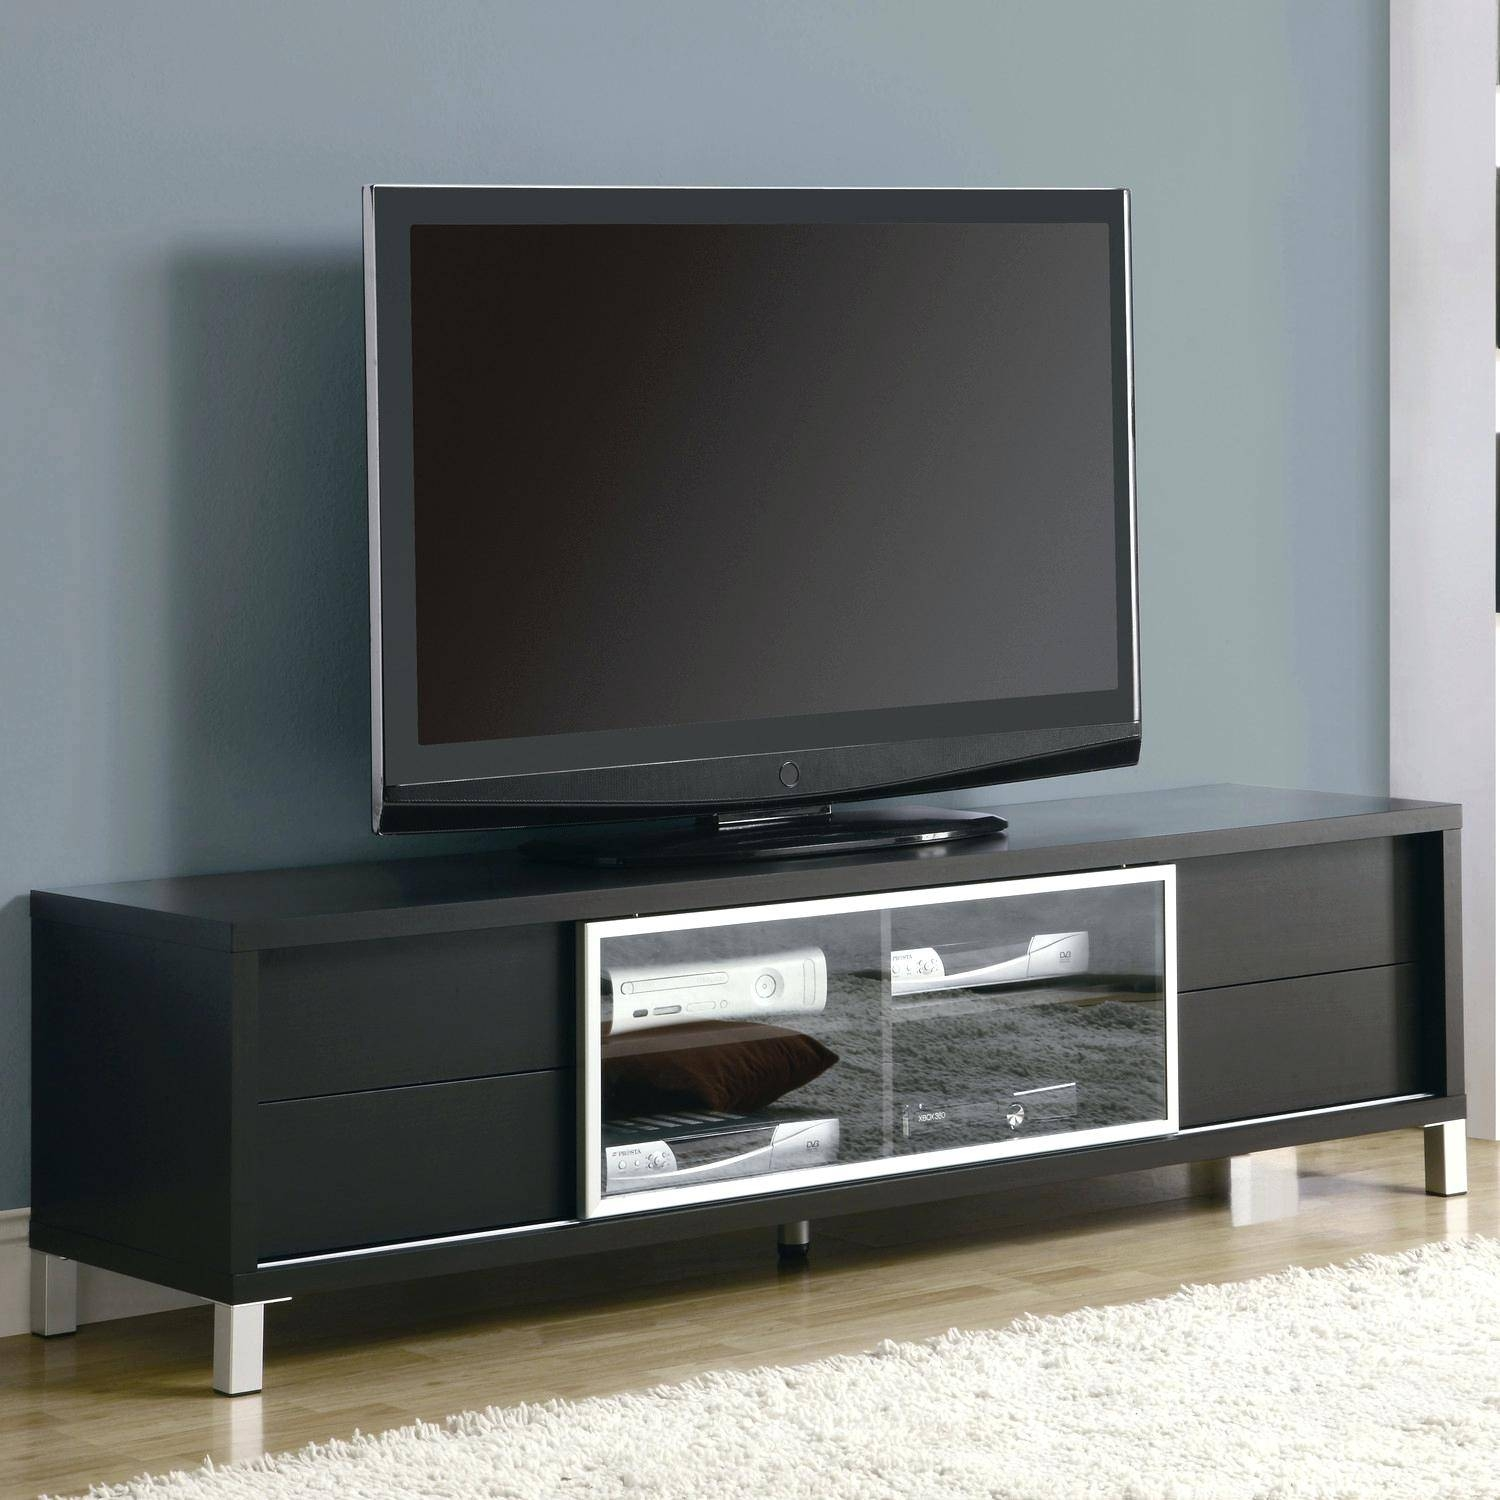 Tv Stand : Large Size Of Tv Standsrustic Brown Stained Wooden Wall regarding Unusual Tv Cabinets (Image 12 of 15)